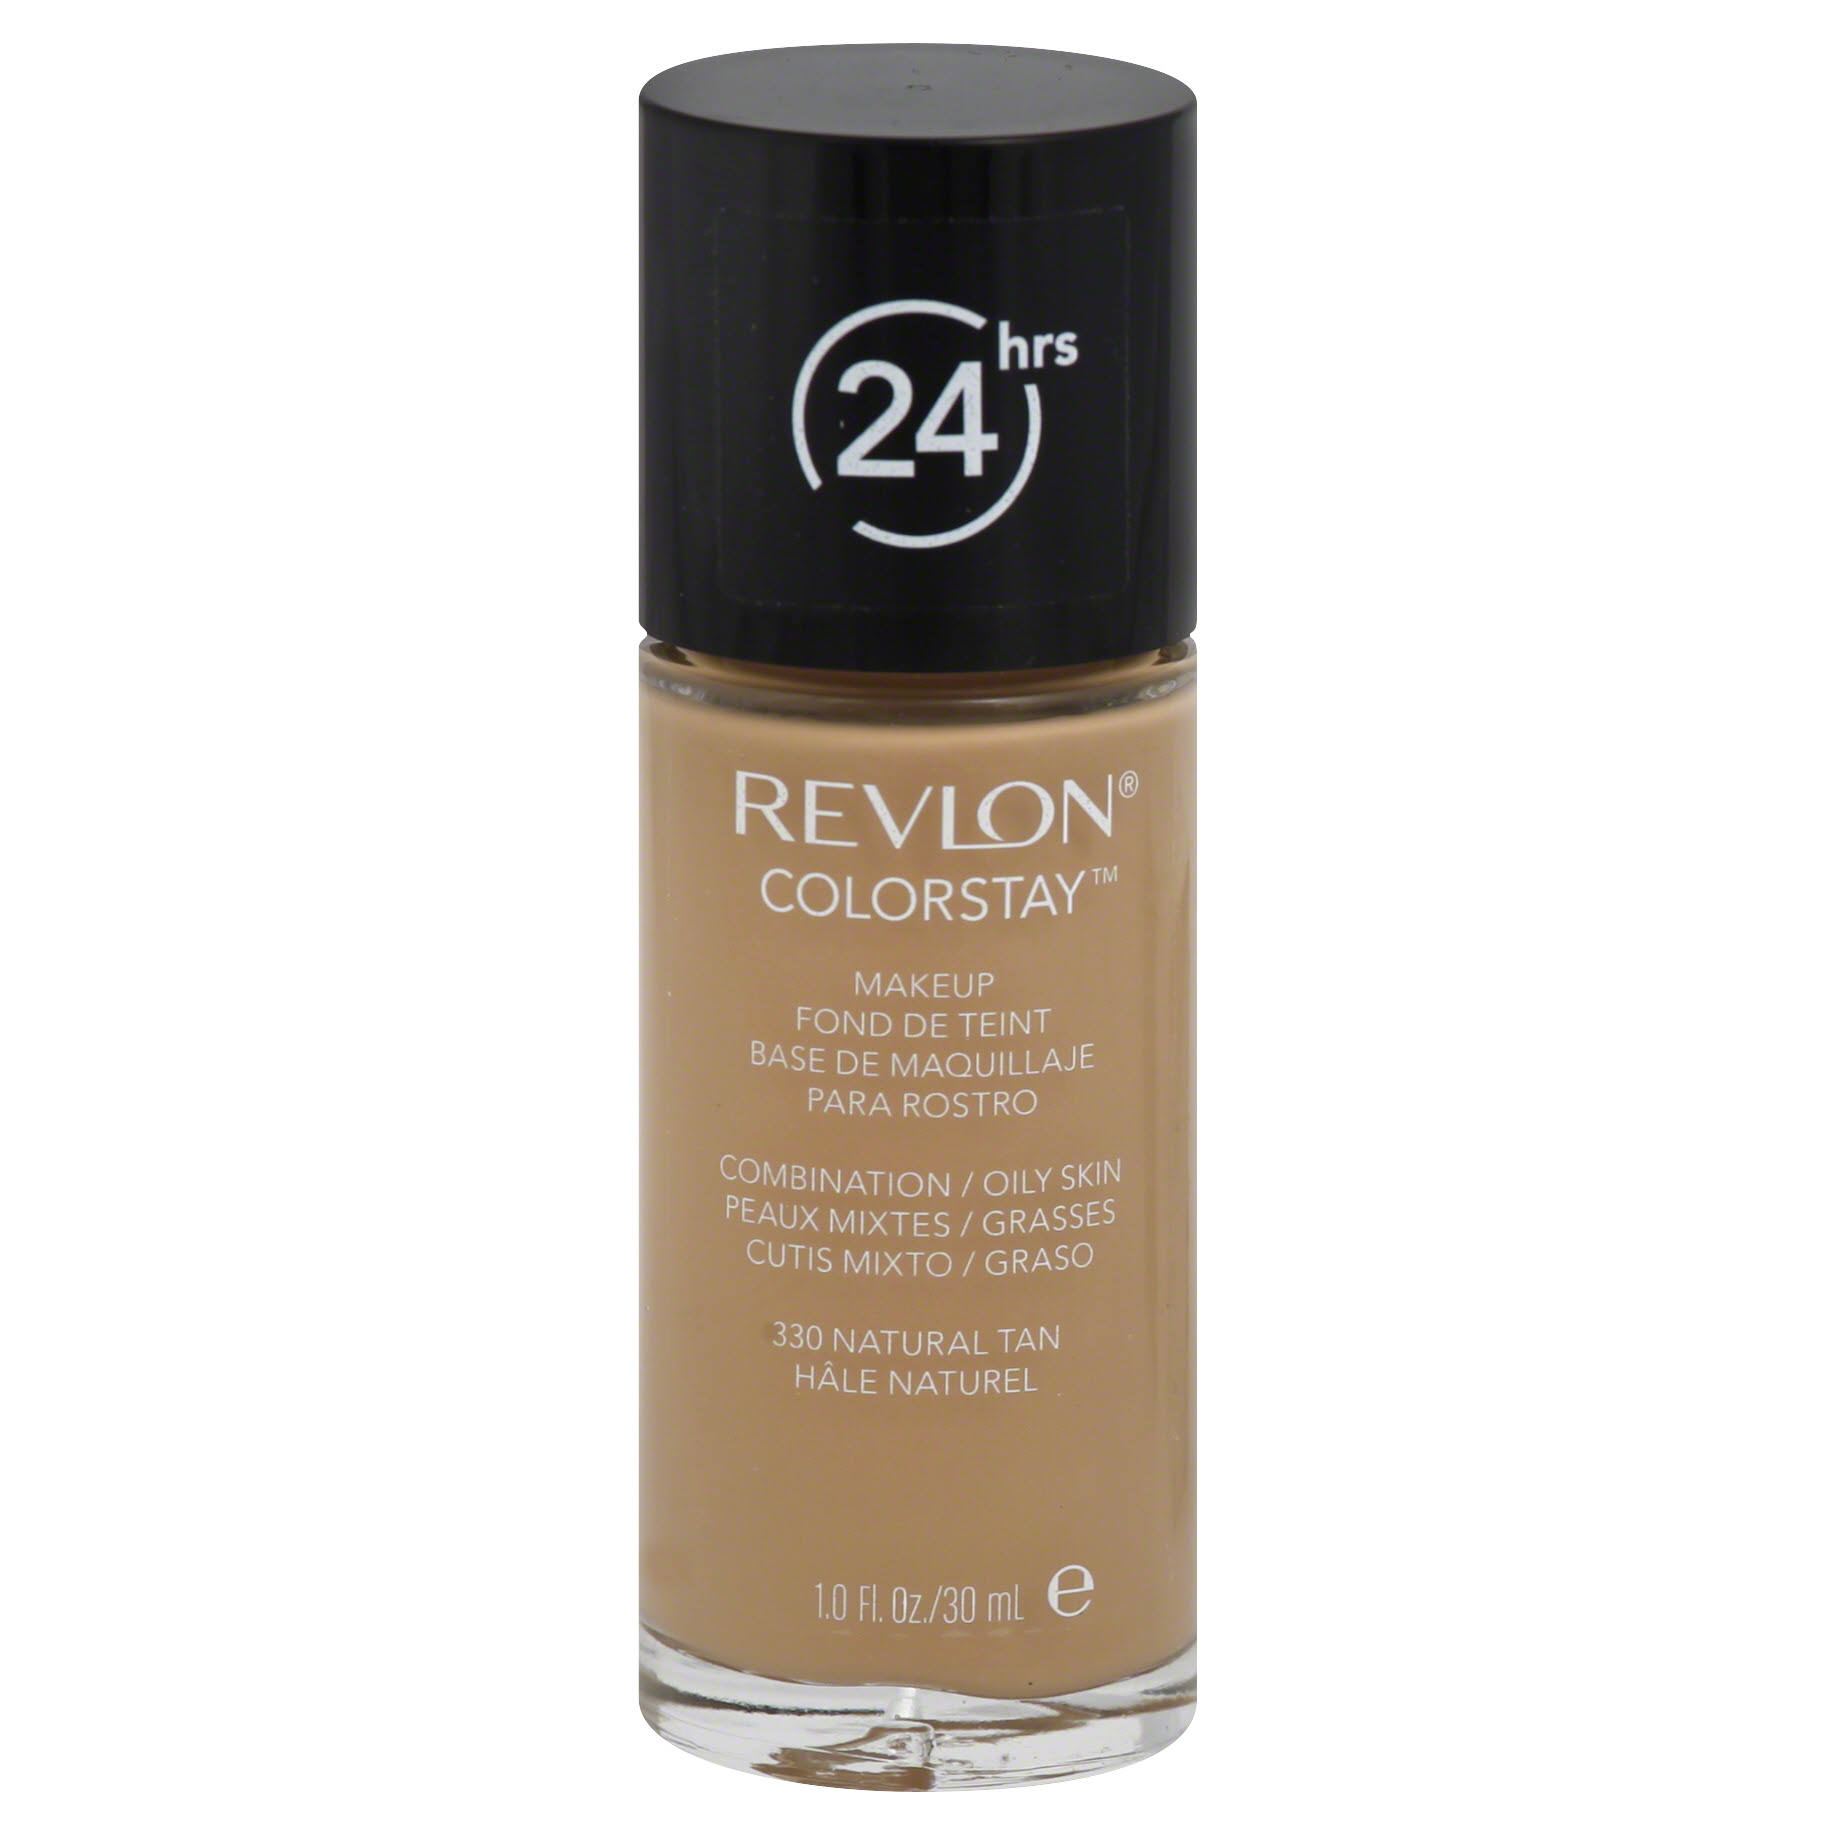 Revlon Colorstay Makeup Combination - Natural Tan, Oily Skin